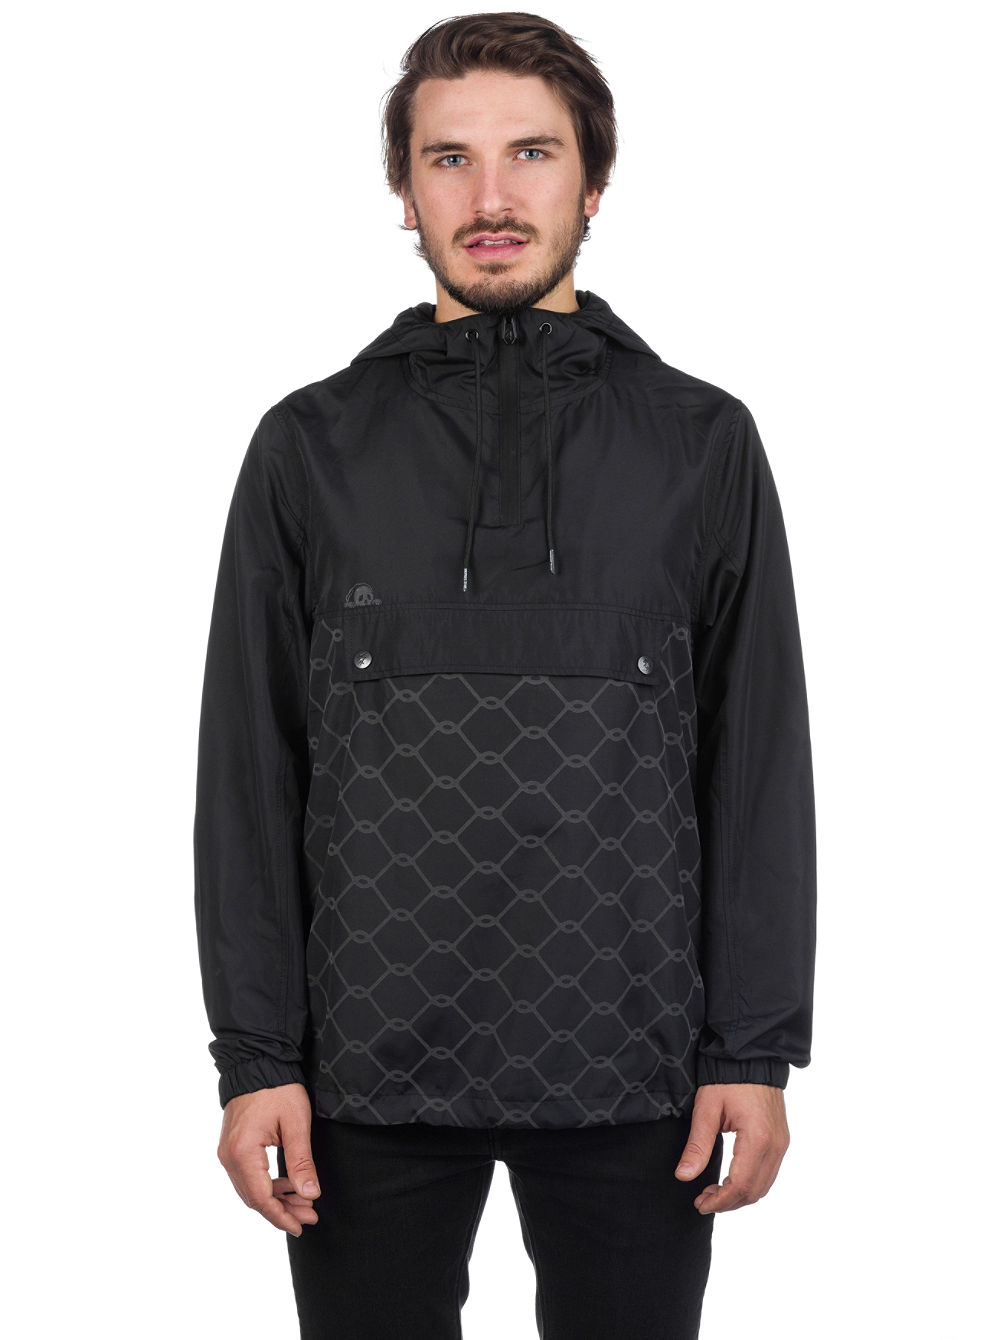 Chain Link Anorak Jacket